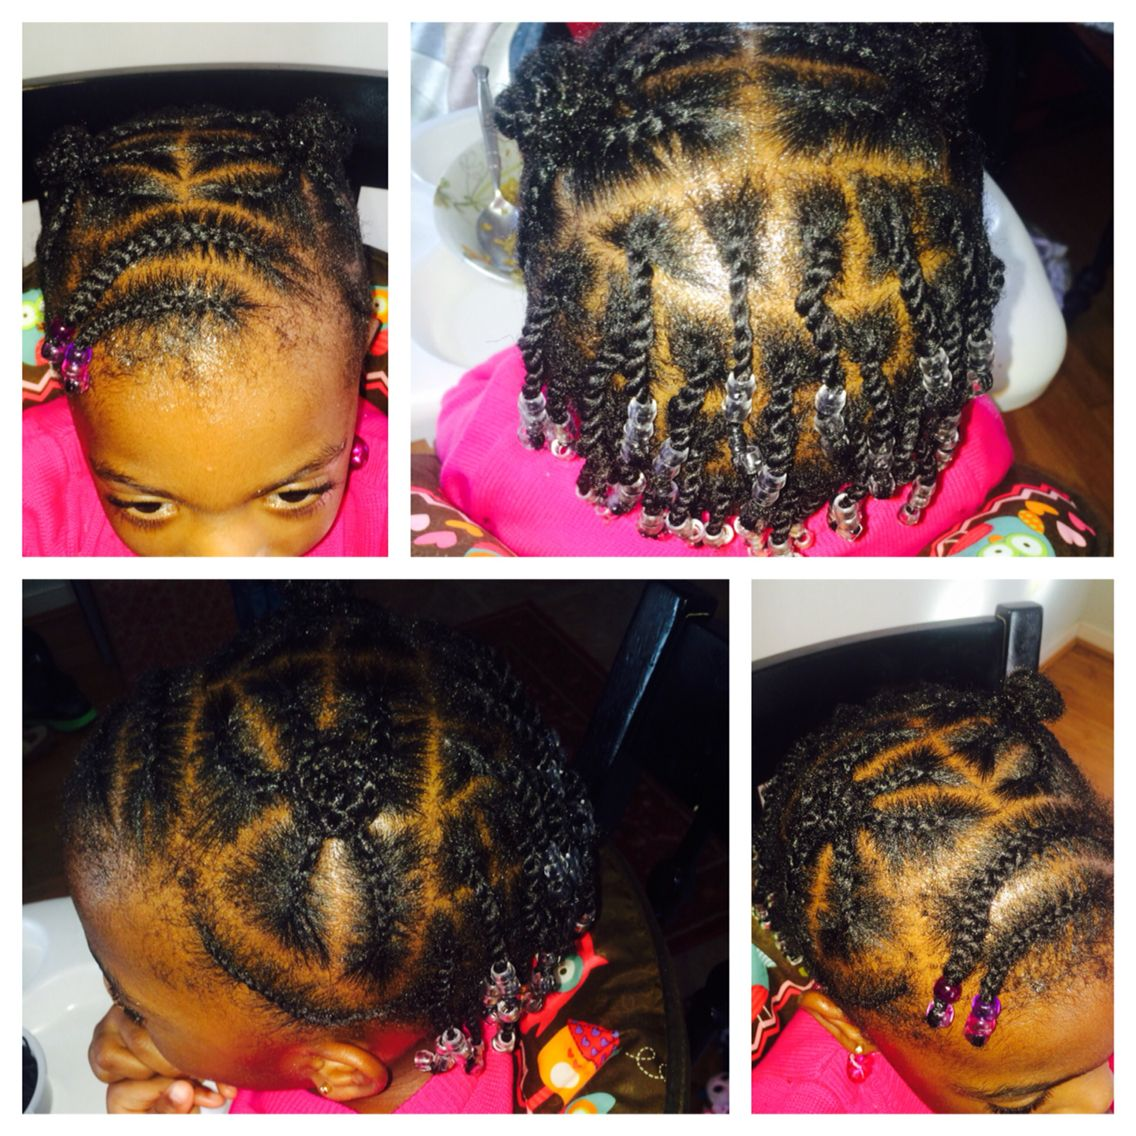 Mini Afro Puffs And Individual Twists With Brad For Toddler With Short Hair More Styles On Ig Theclairk Black Baby Hairstyles Baby Hairstyles Hair Styles